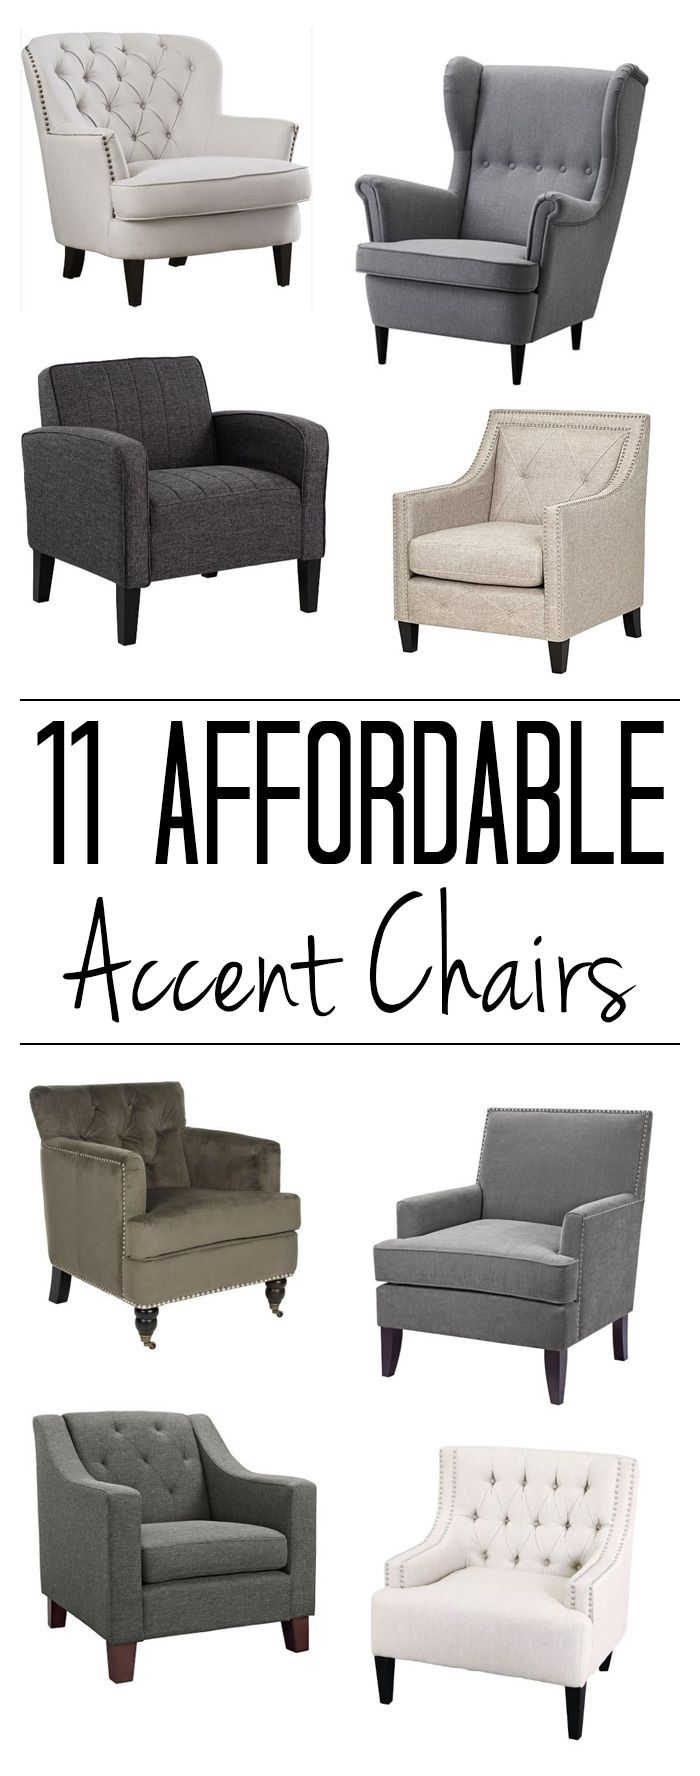 Click For Sources To 11 Cheap Accent Chairs, Including The 8 Shown Here! I